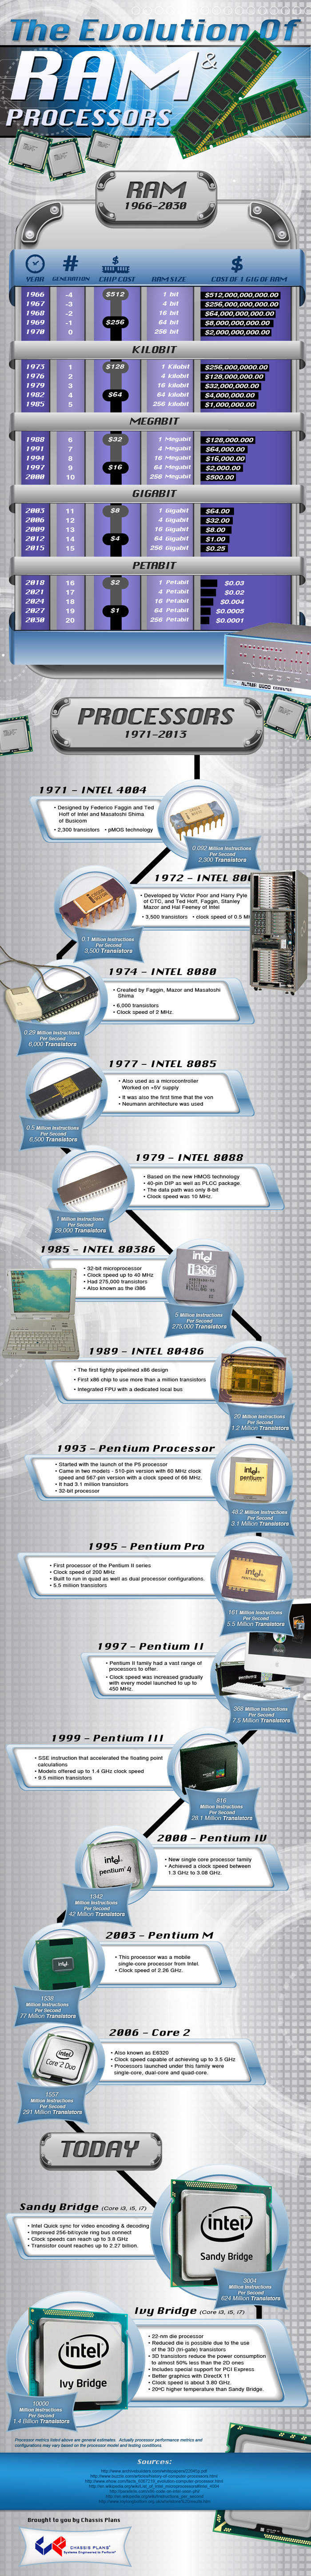 tech-evolution-ram-processor-infographic1